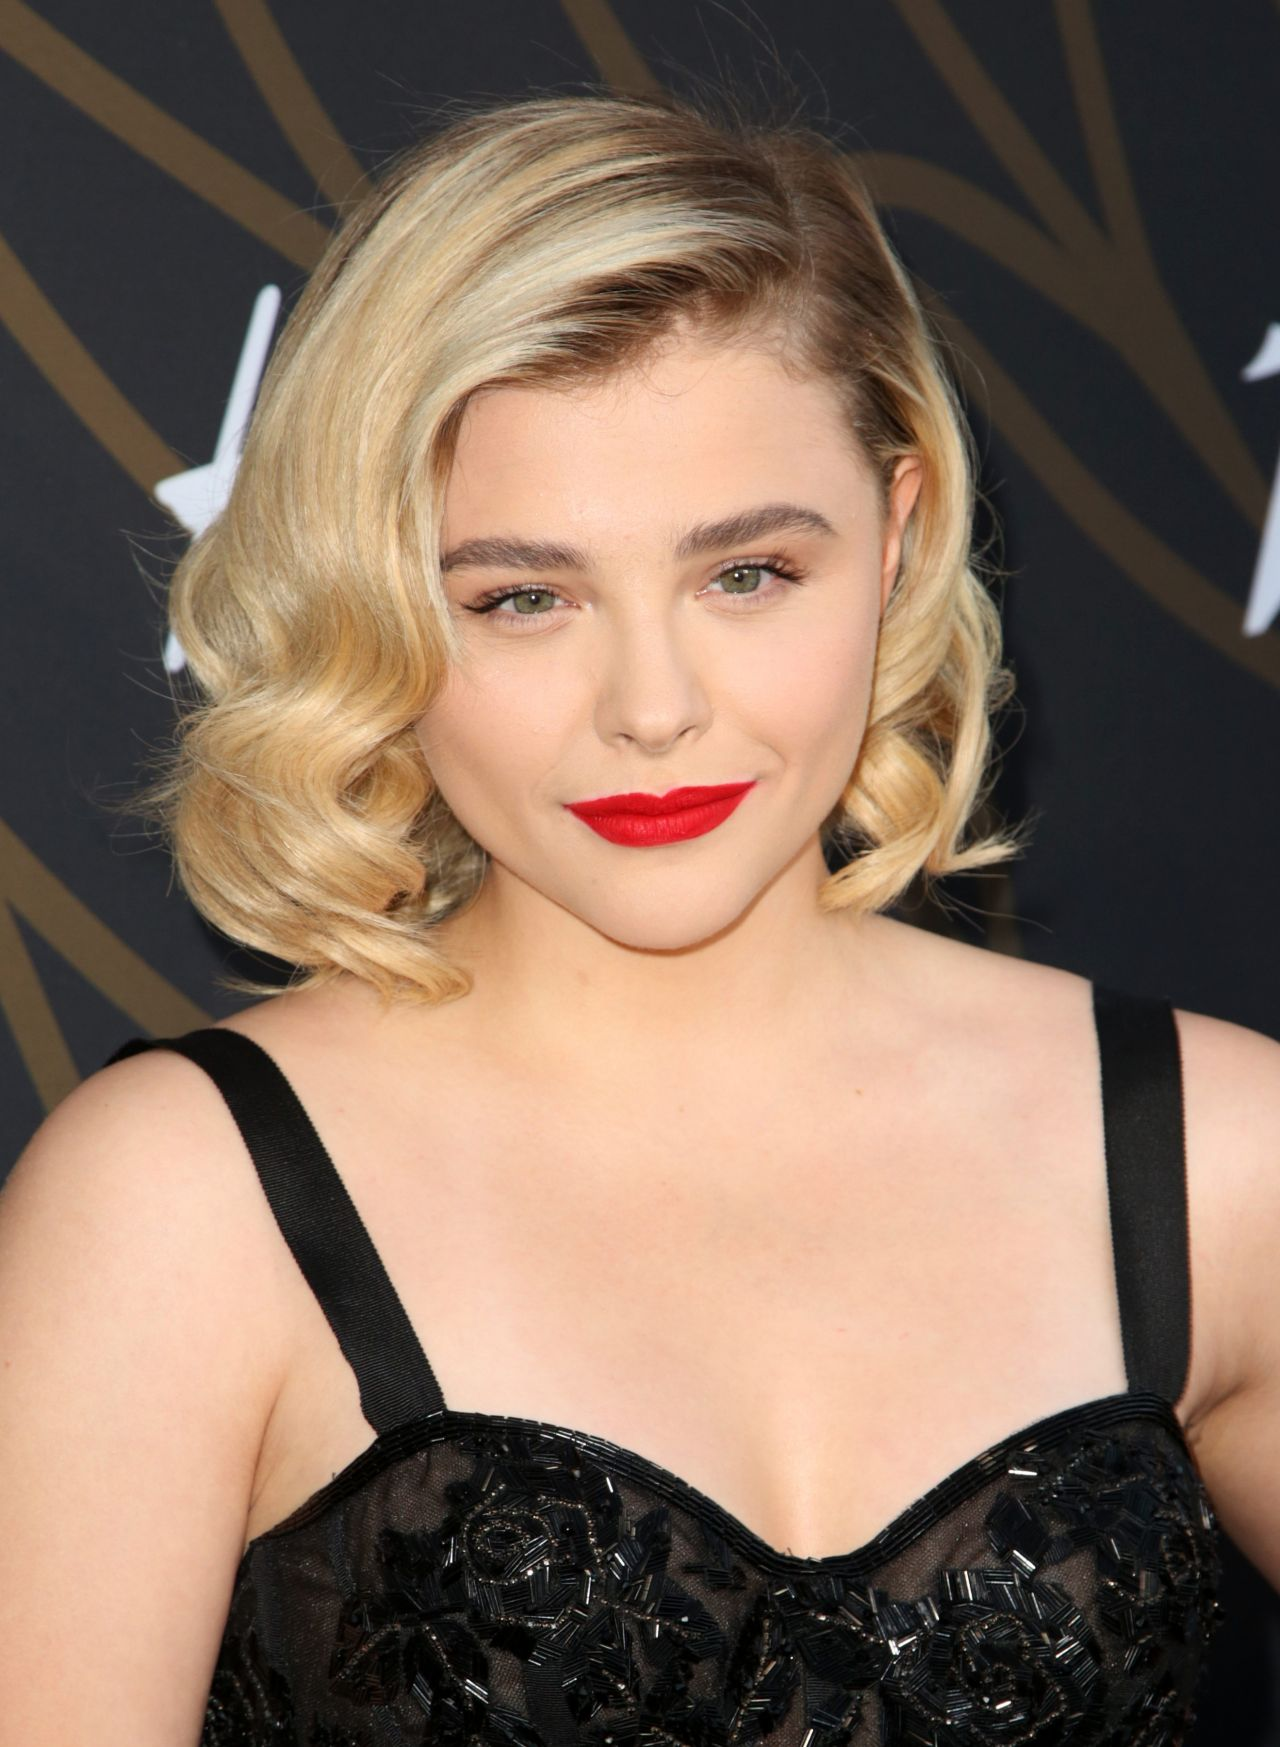 chloe moretz latest photos